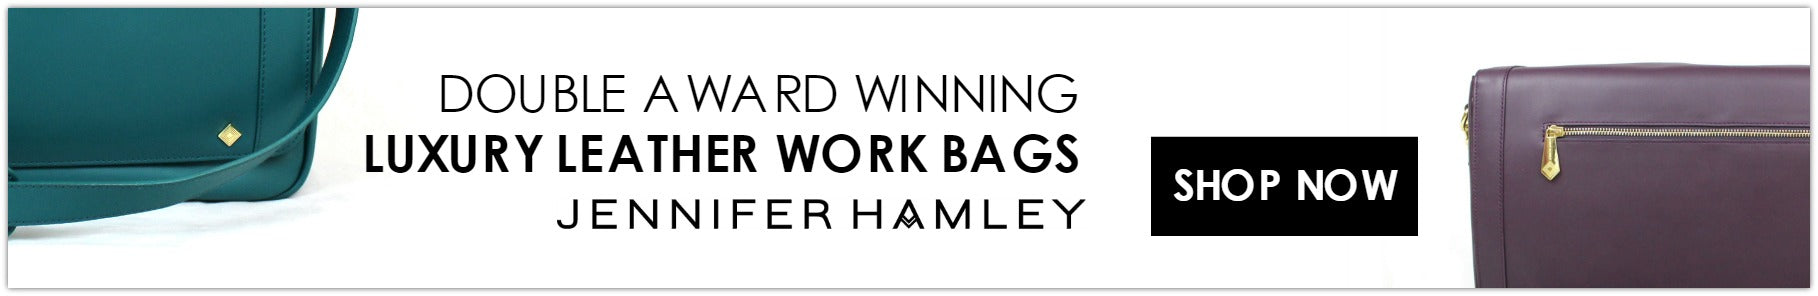 award winning handbags from jennifer hamley england